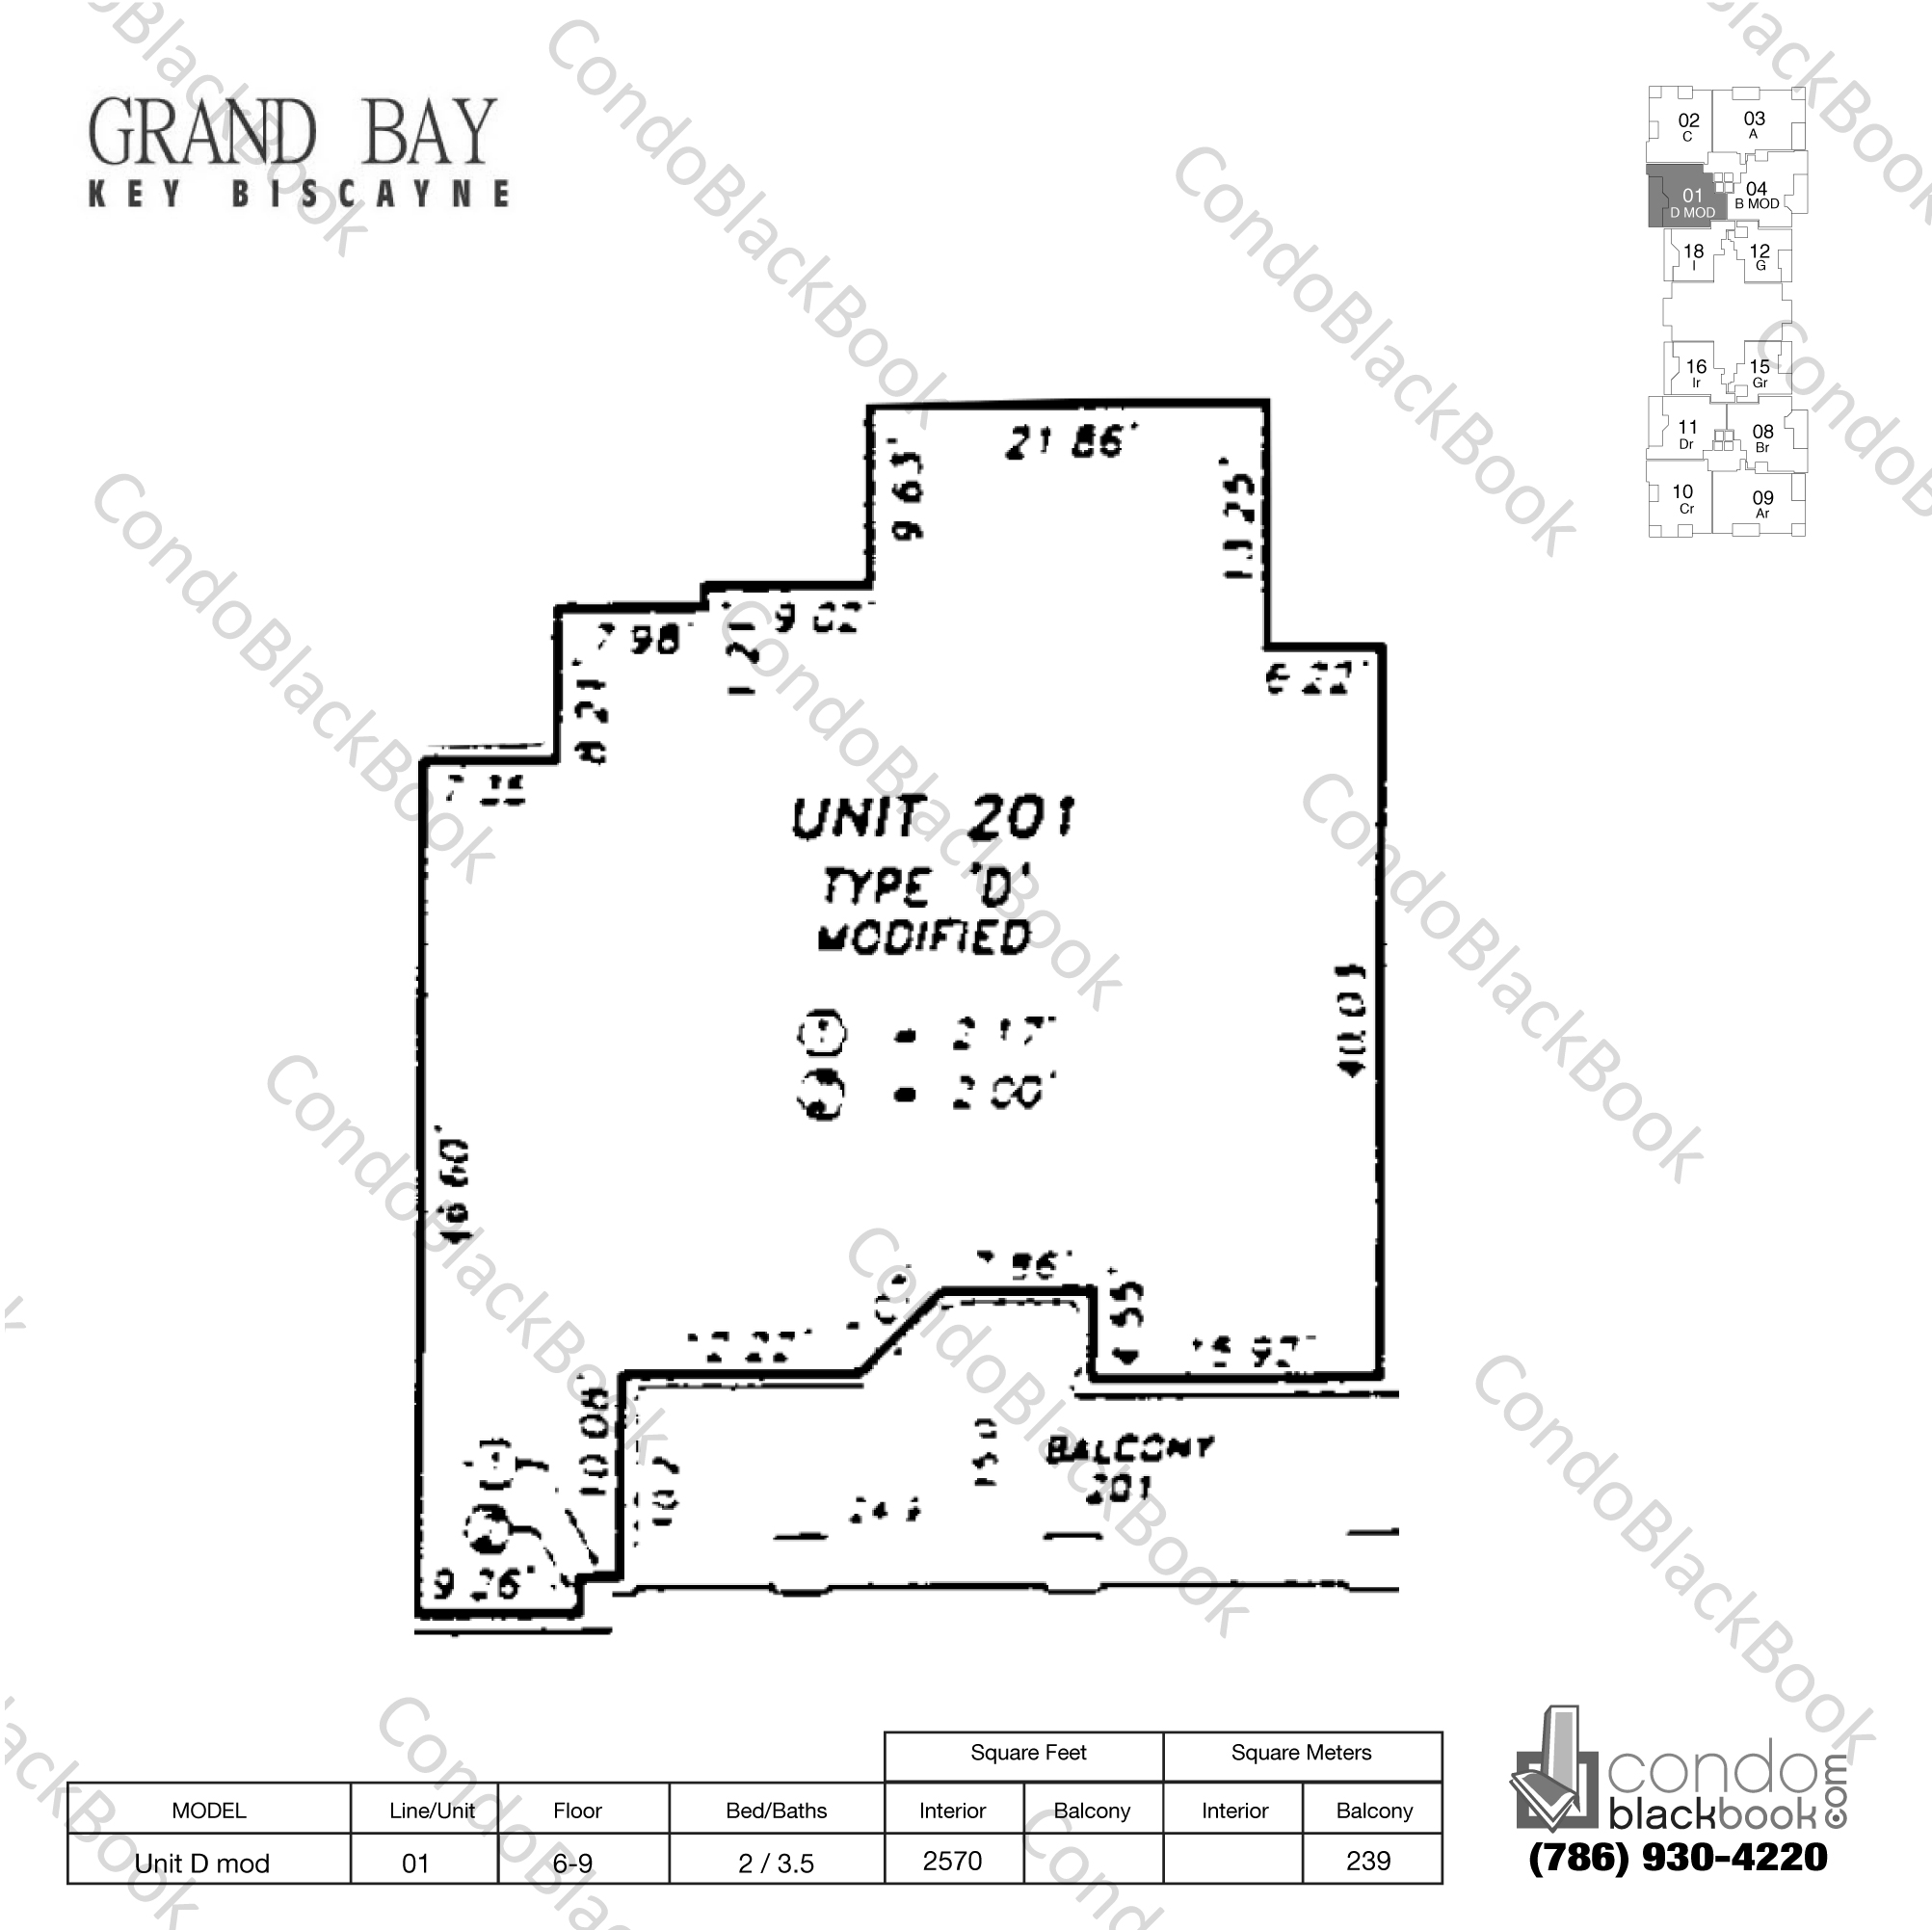 Grand bay residences unit 901 condo for sale in key for Floor plans 900 biscayne